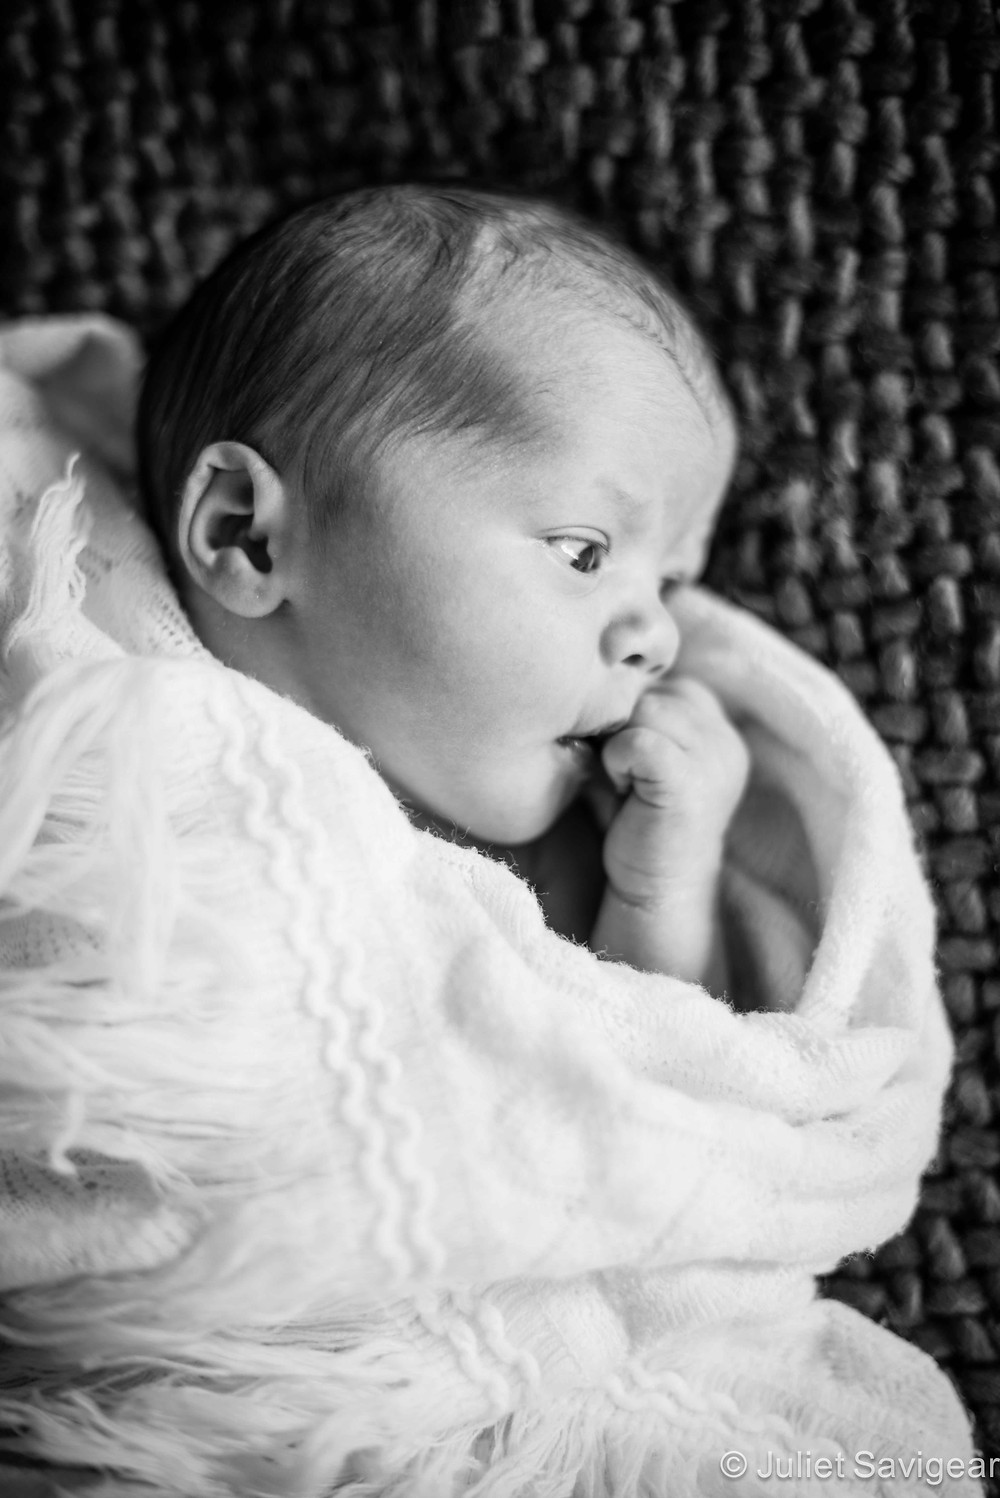 In Thought - Newborn Baby Photography, Wimbledon